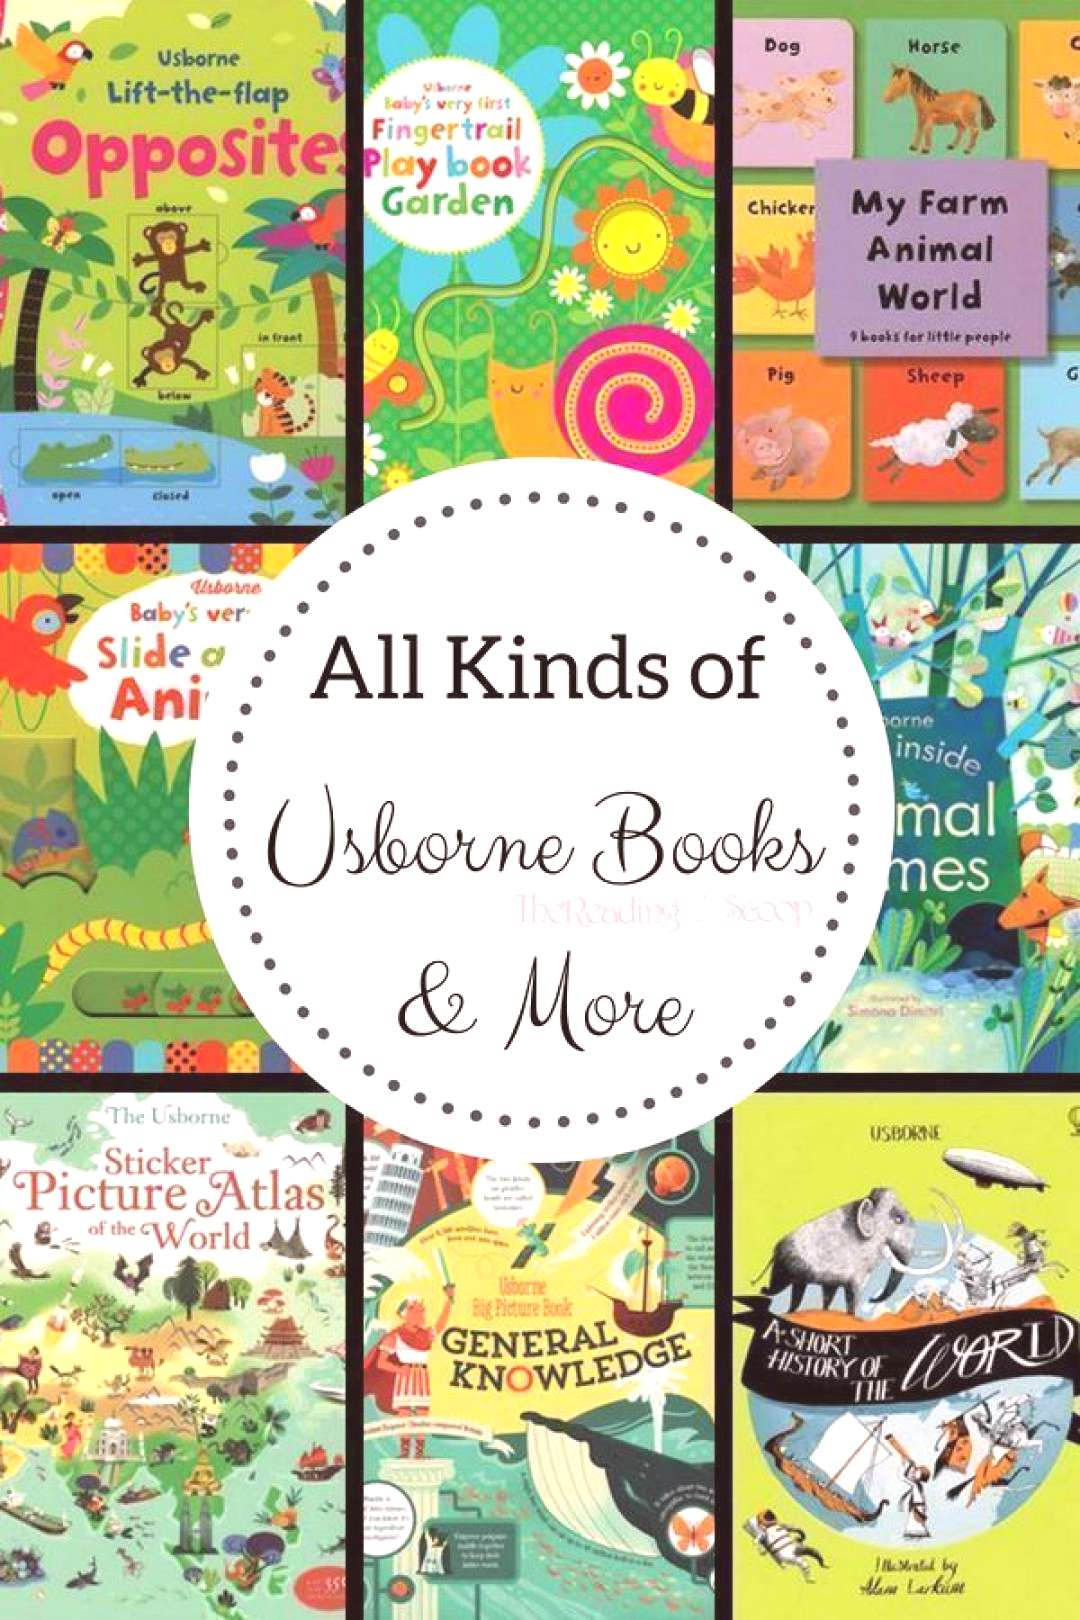 All Kinds of Usborne Books More - The Reading Scoop How many books have you discovered with Usborn